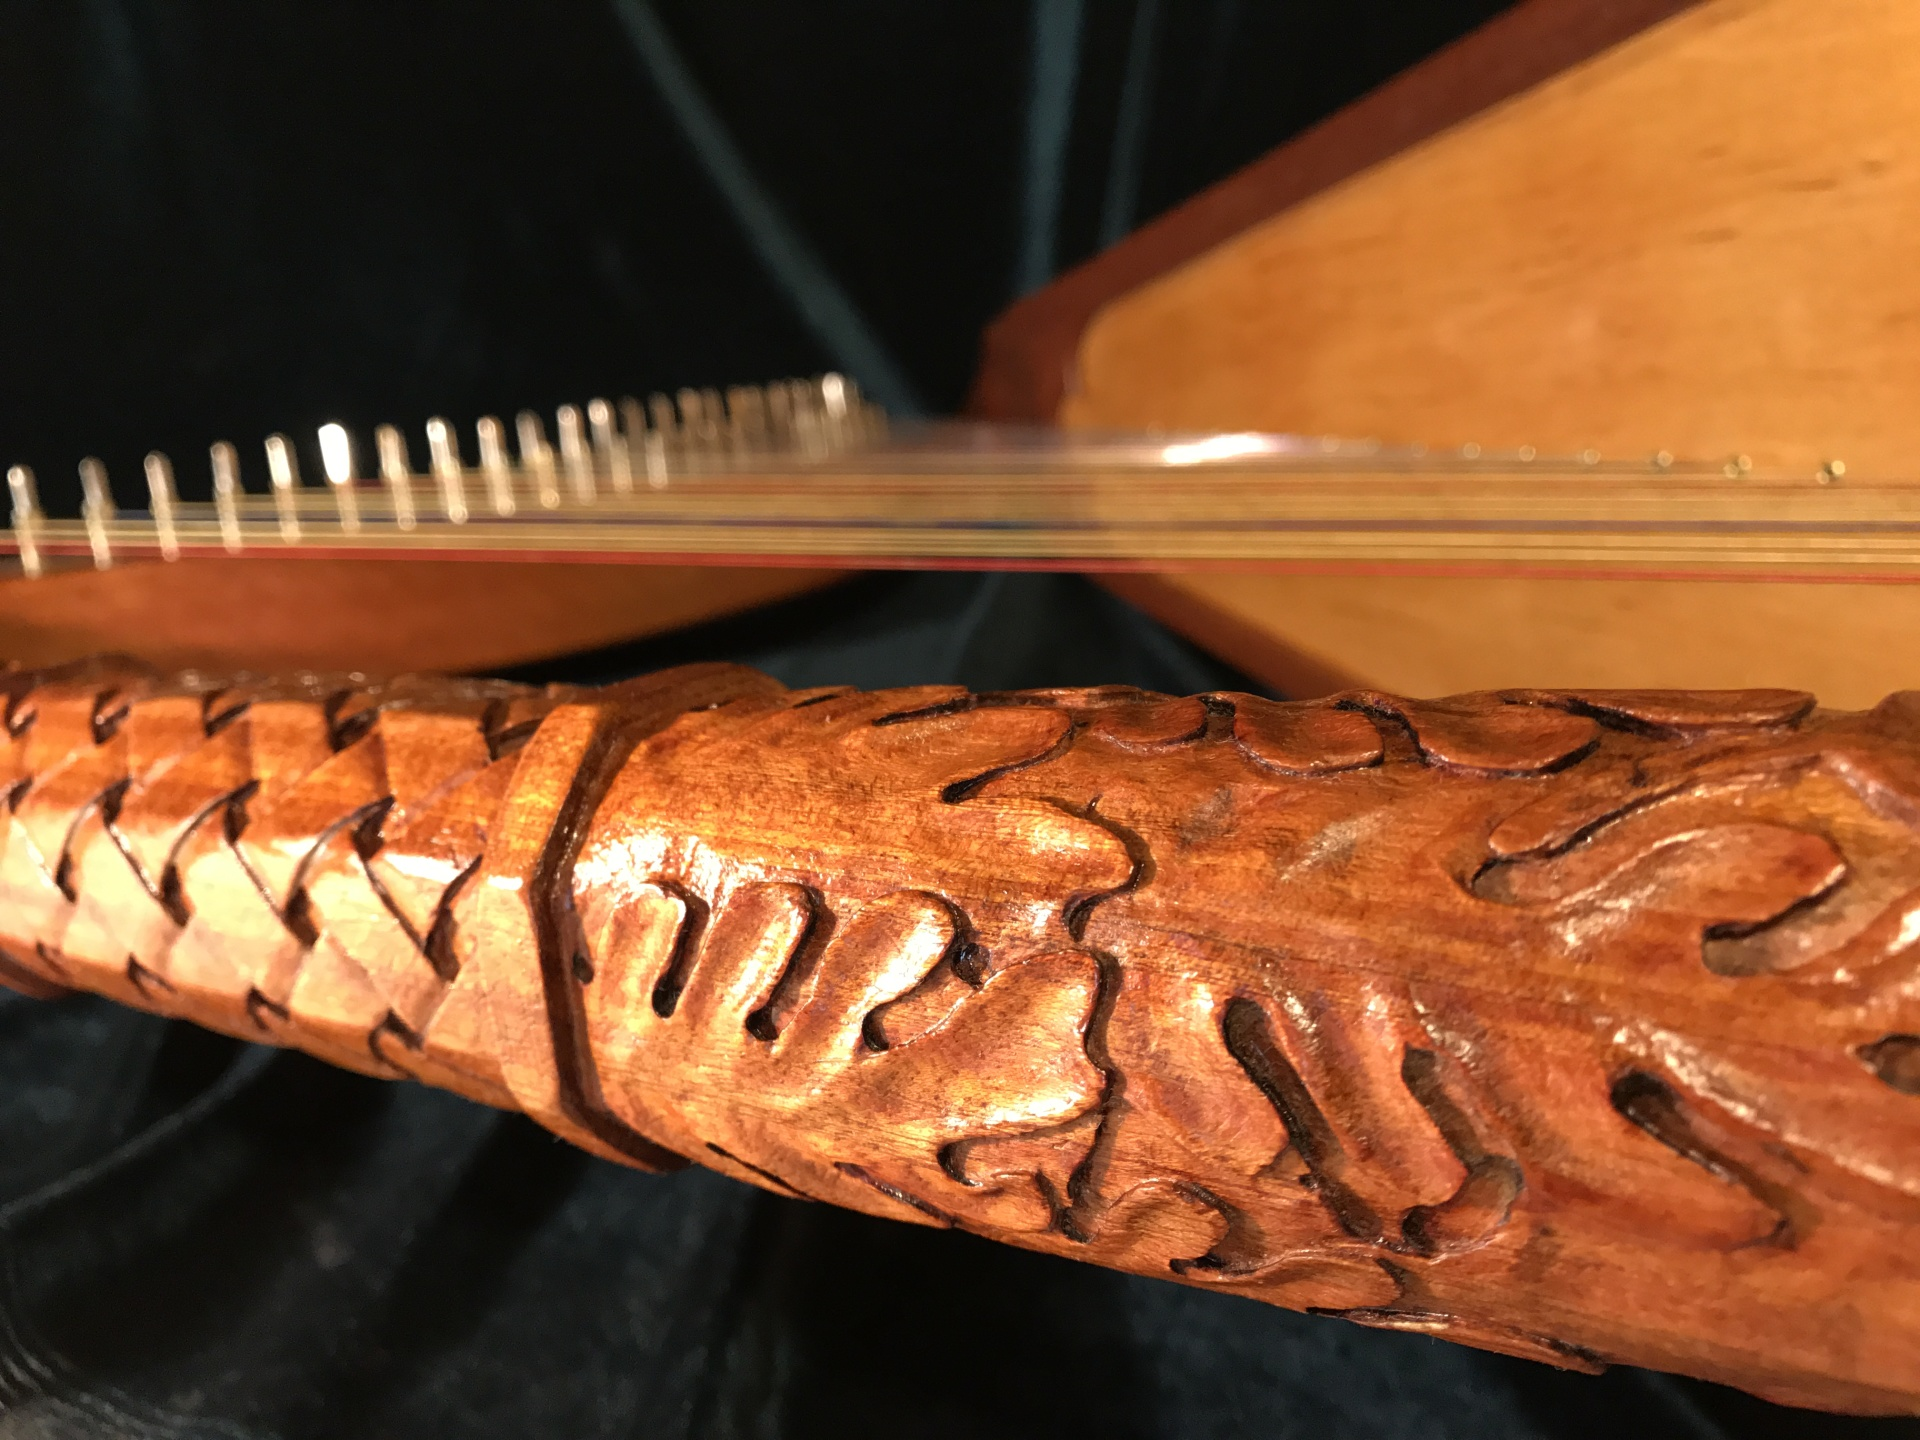 Harp gold leaf, carving, pyrography